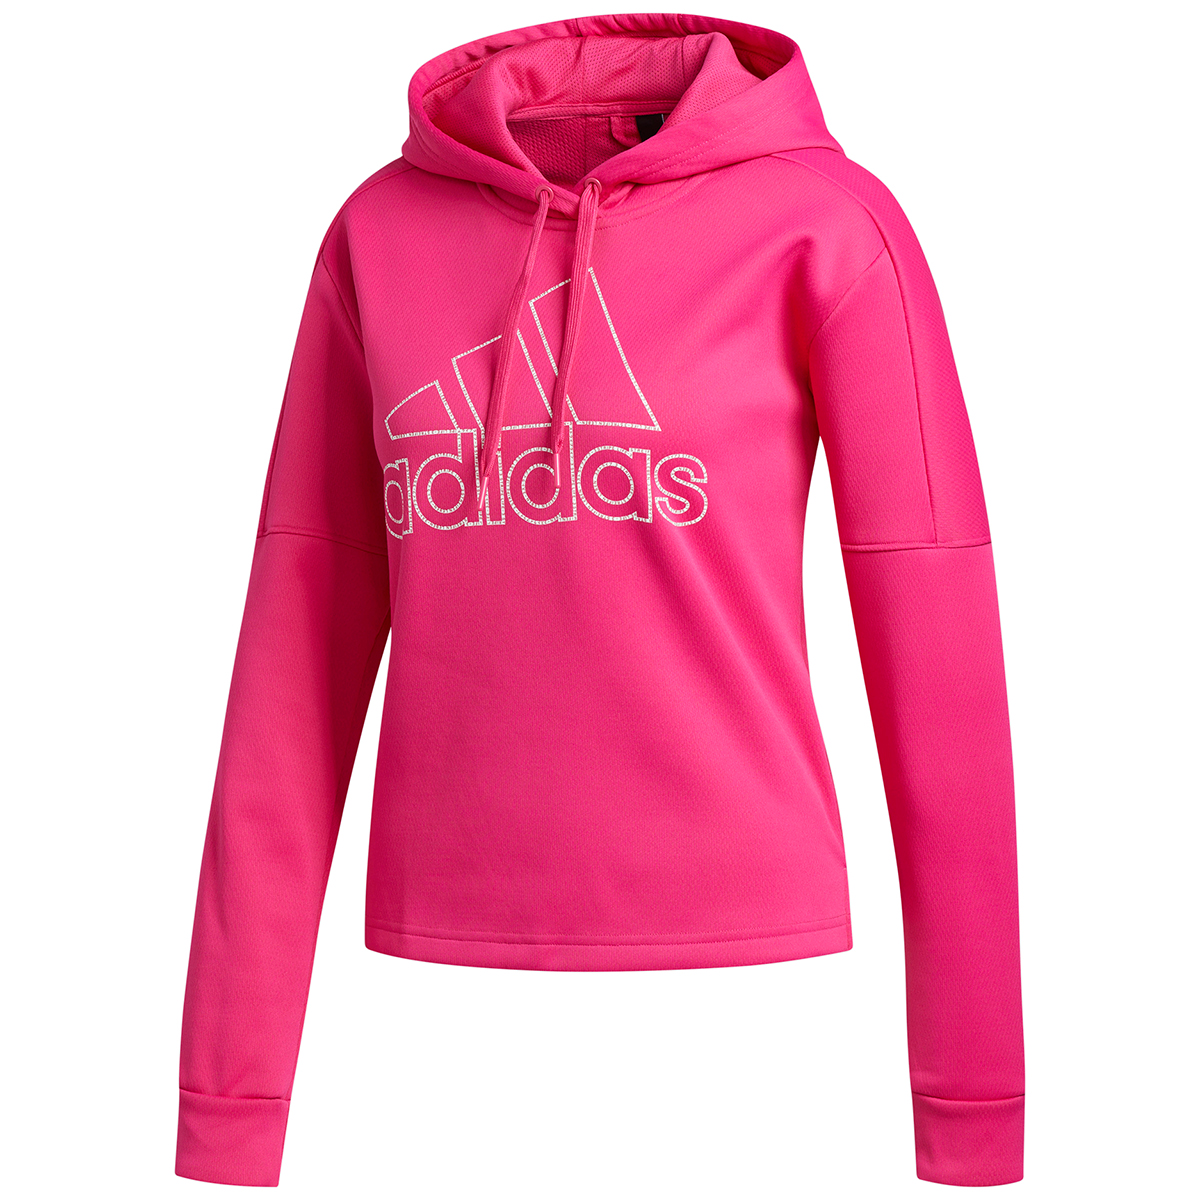 Adidas Women's Team Issue Badge Of Sport Pullover Hoodie - Red, M